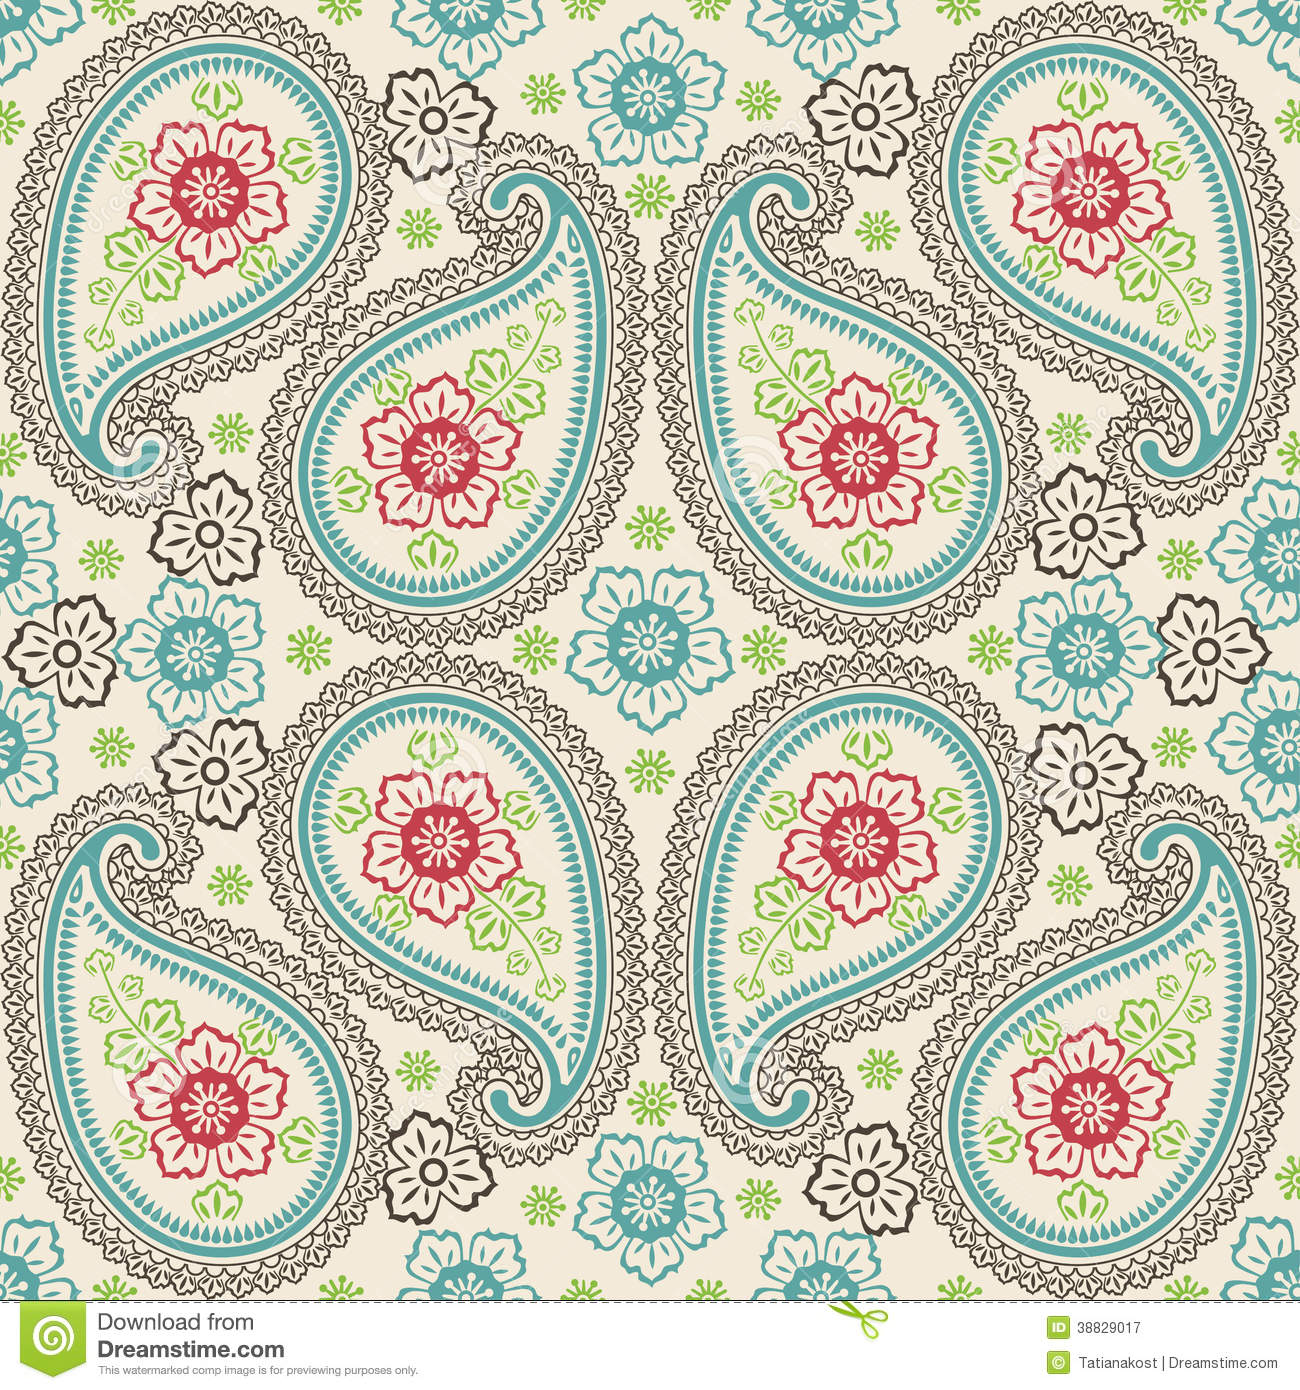 Involved Asian motif fabric August 13